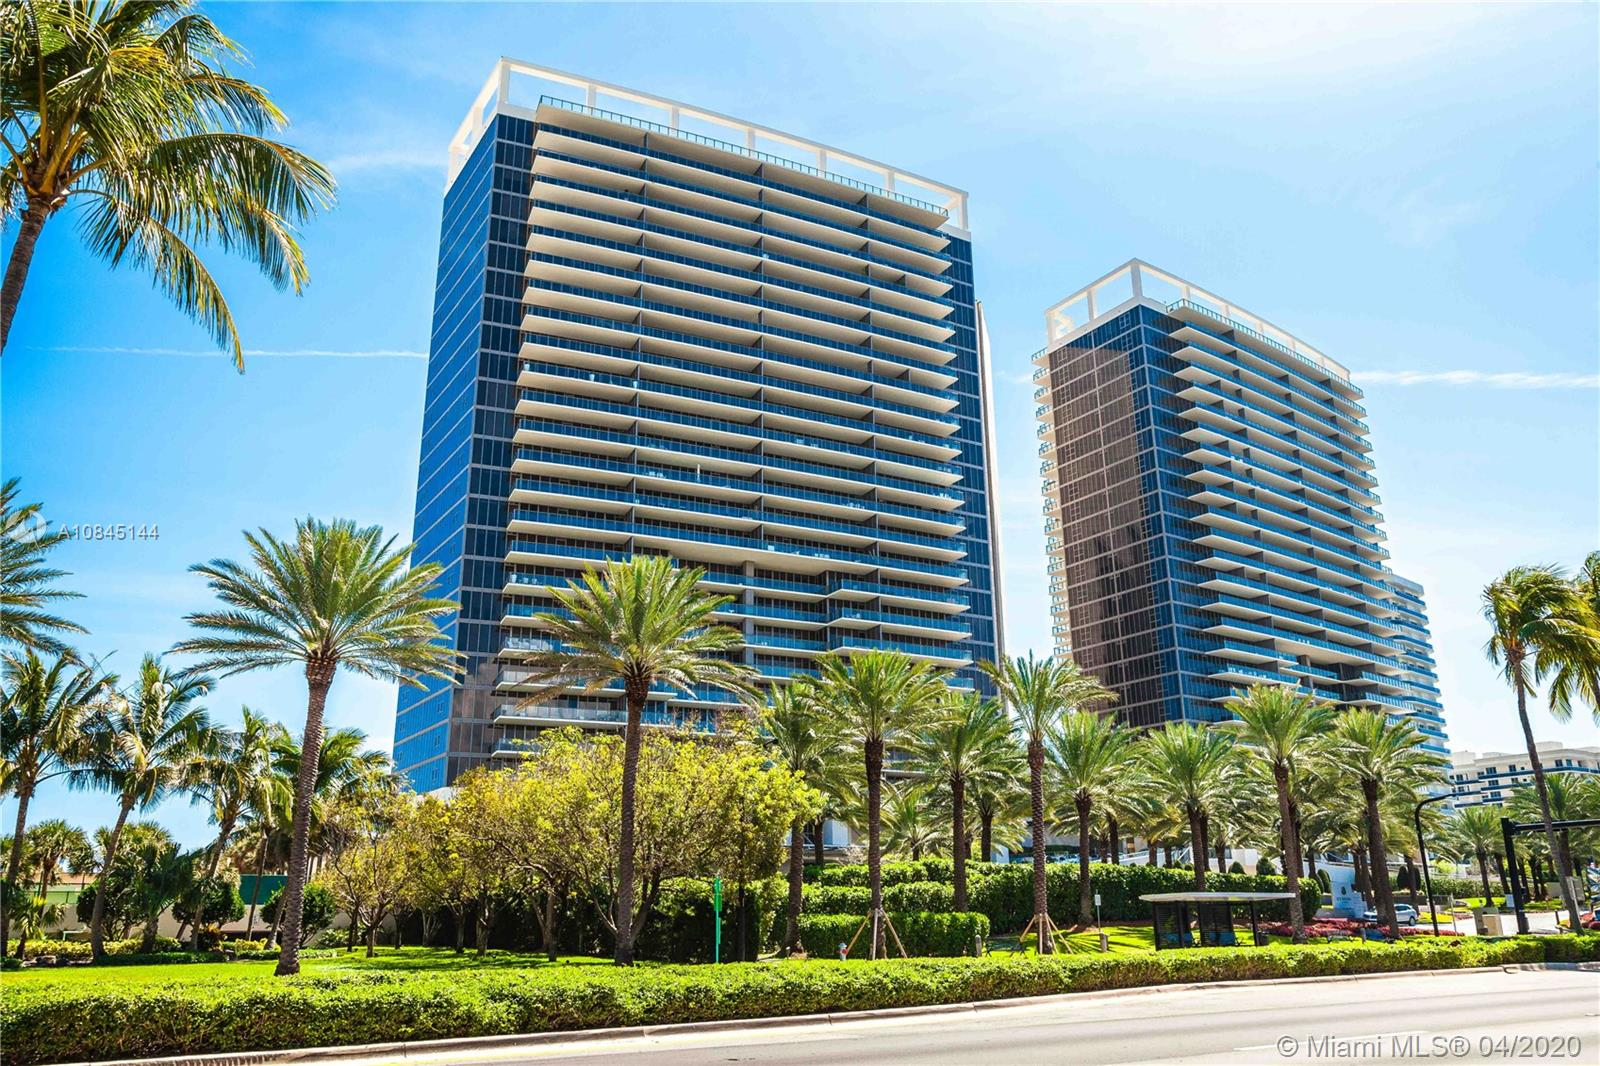 image #1 of property, Bal Harbour North South C, Unit 2503N